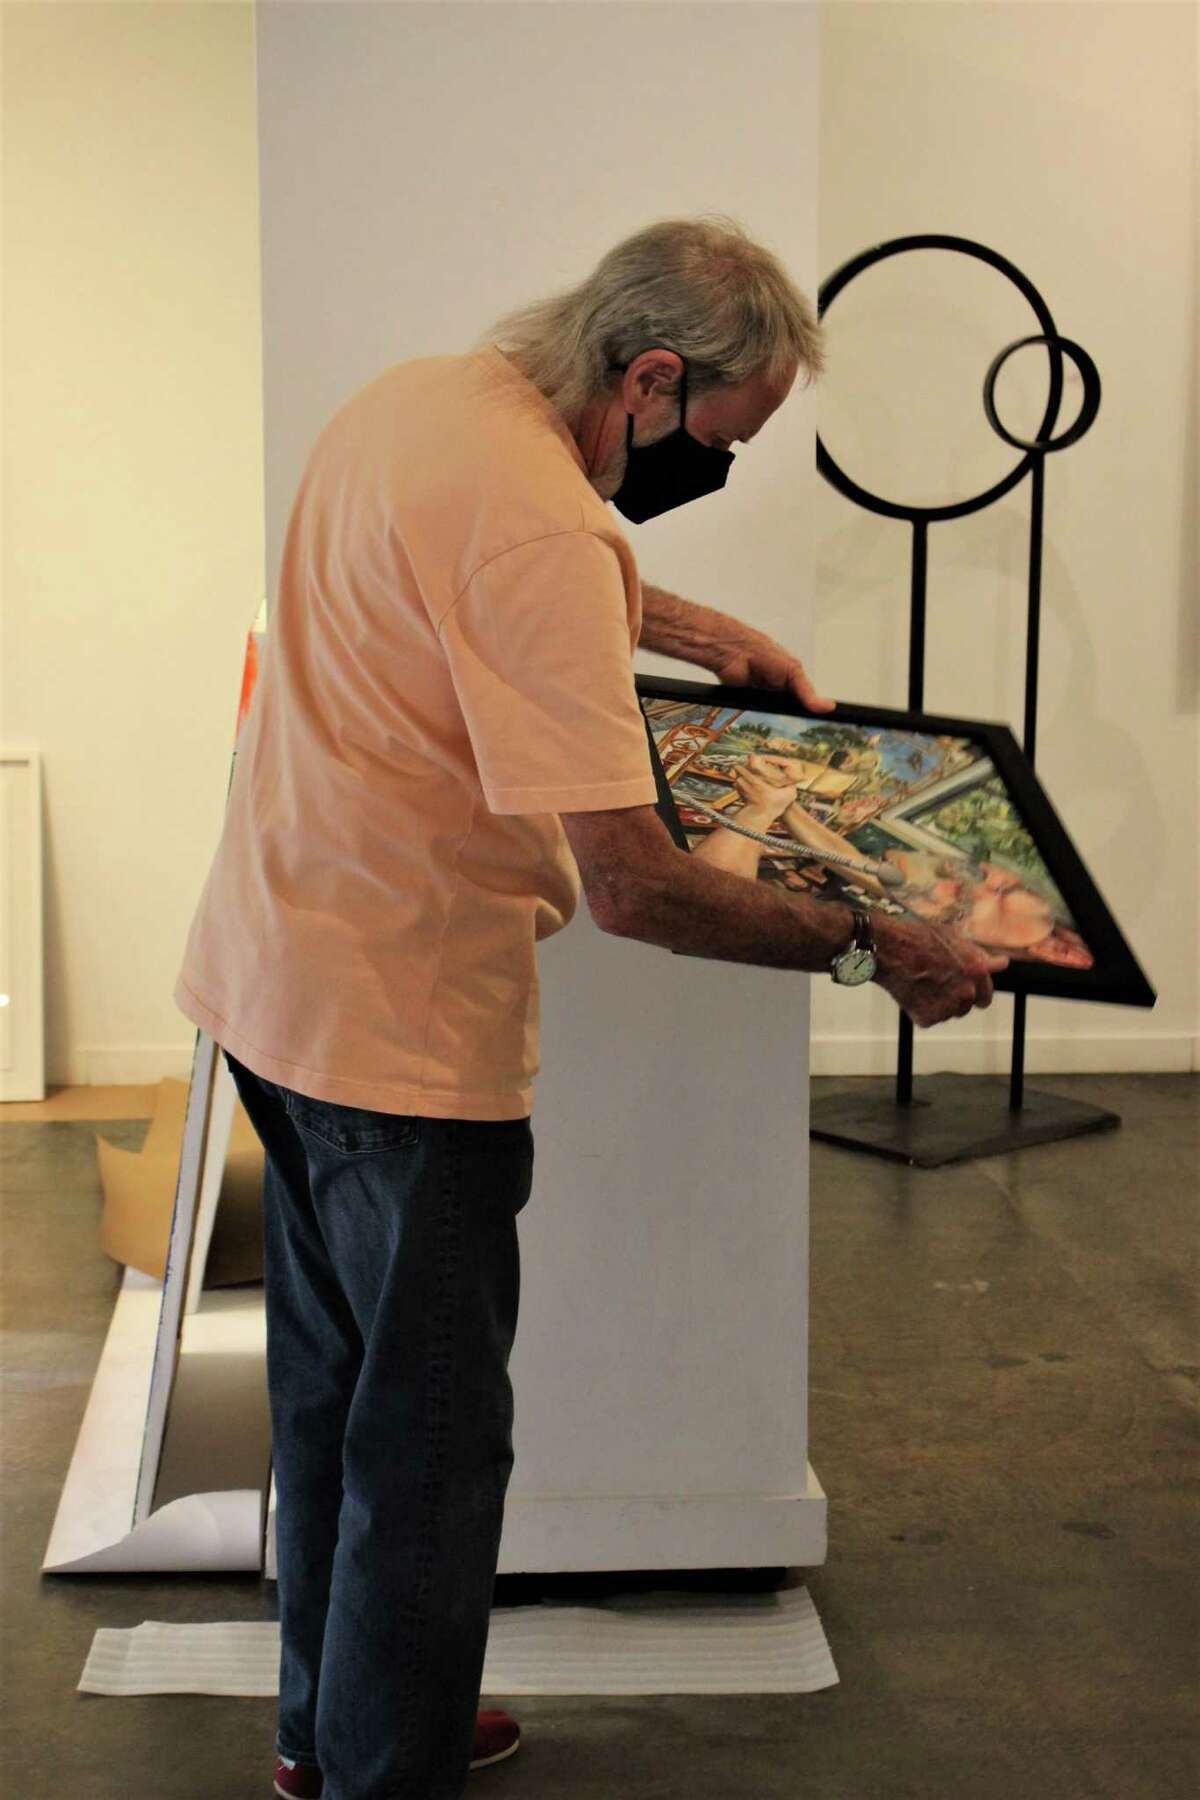 Selected juror Wayne Gilbert studies a piece of art from Archway Gallery's 12th Annual Juried Exhibition. A Facebook Live watch party on Sunday, July 5, announced 39 works selected for the show from 243 submissions.